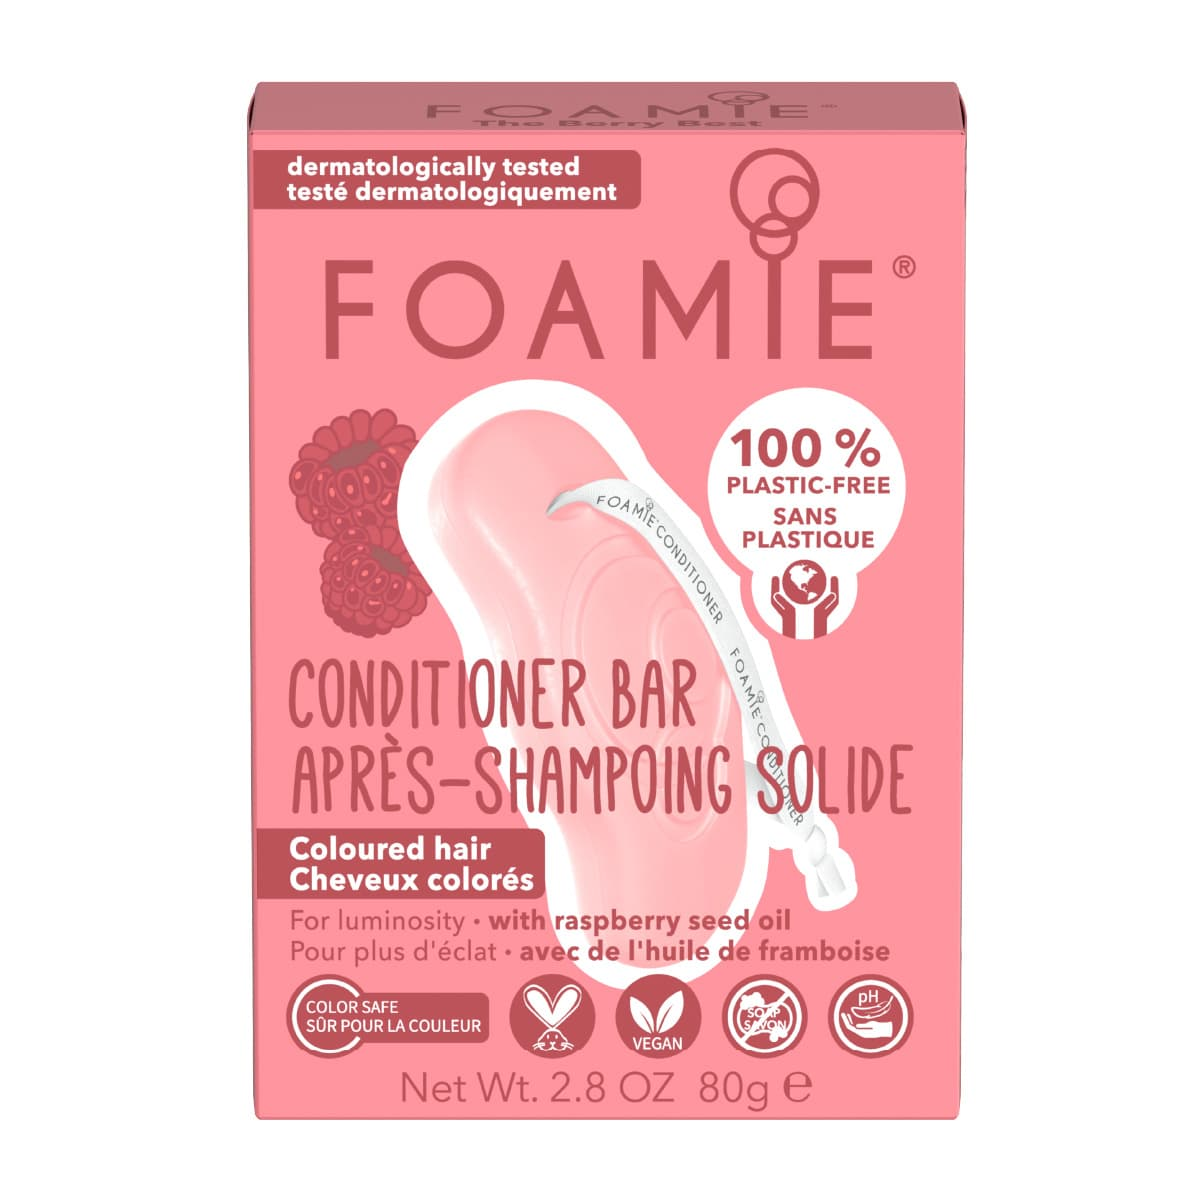 Foamie - Après-shampoing solide - The Berry Best